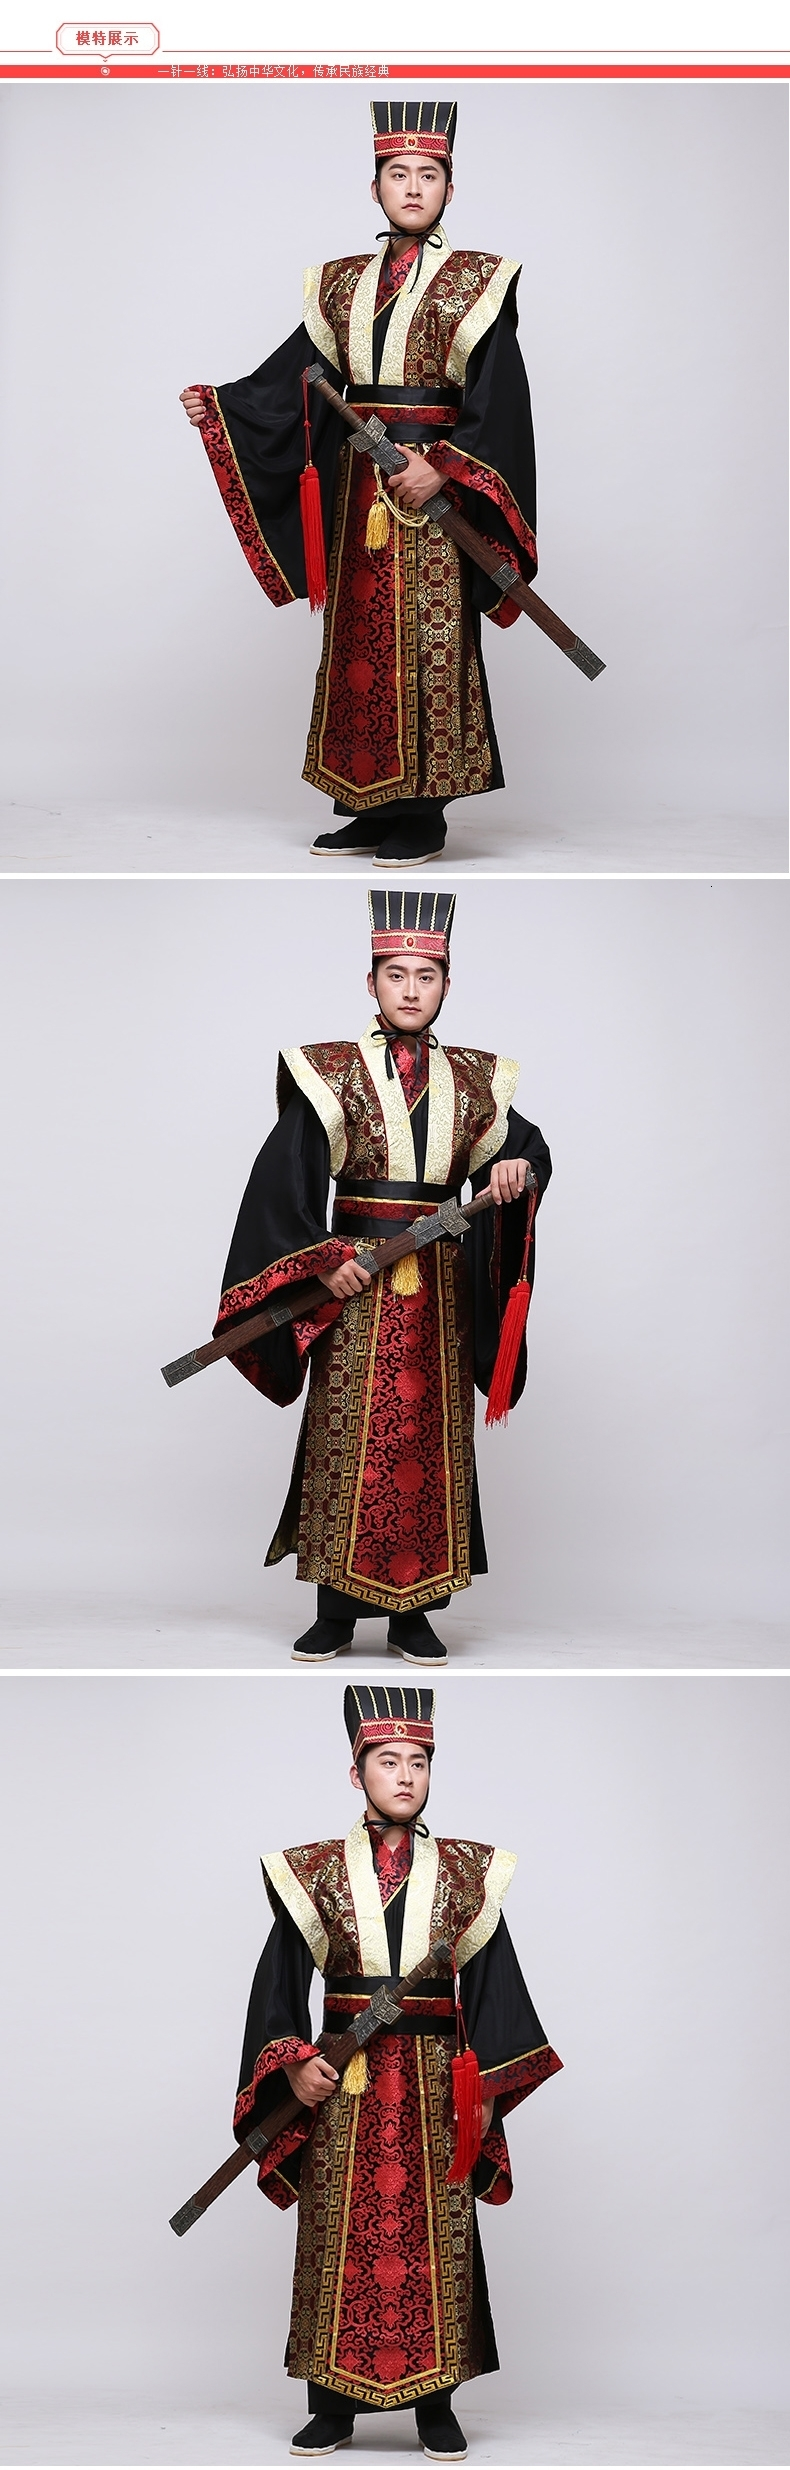 Chinese Man Han Clothing Emperor Prince Minister Show Cosplay Suit Robe Costume